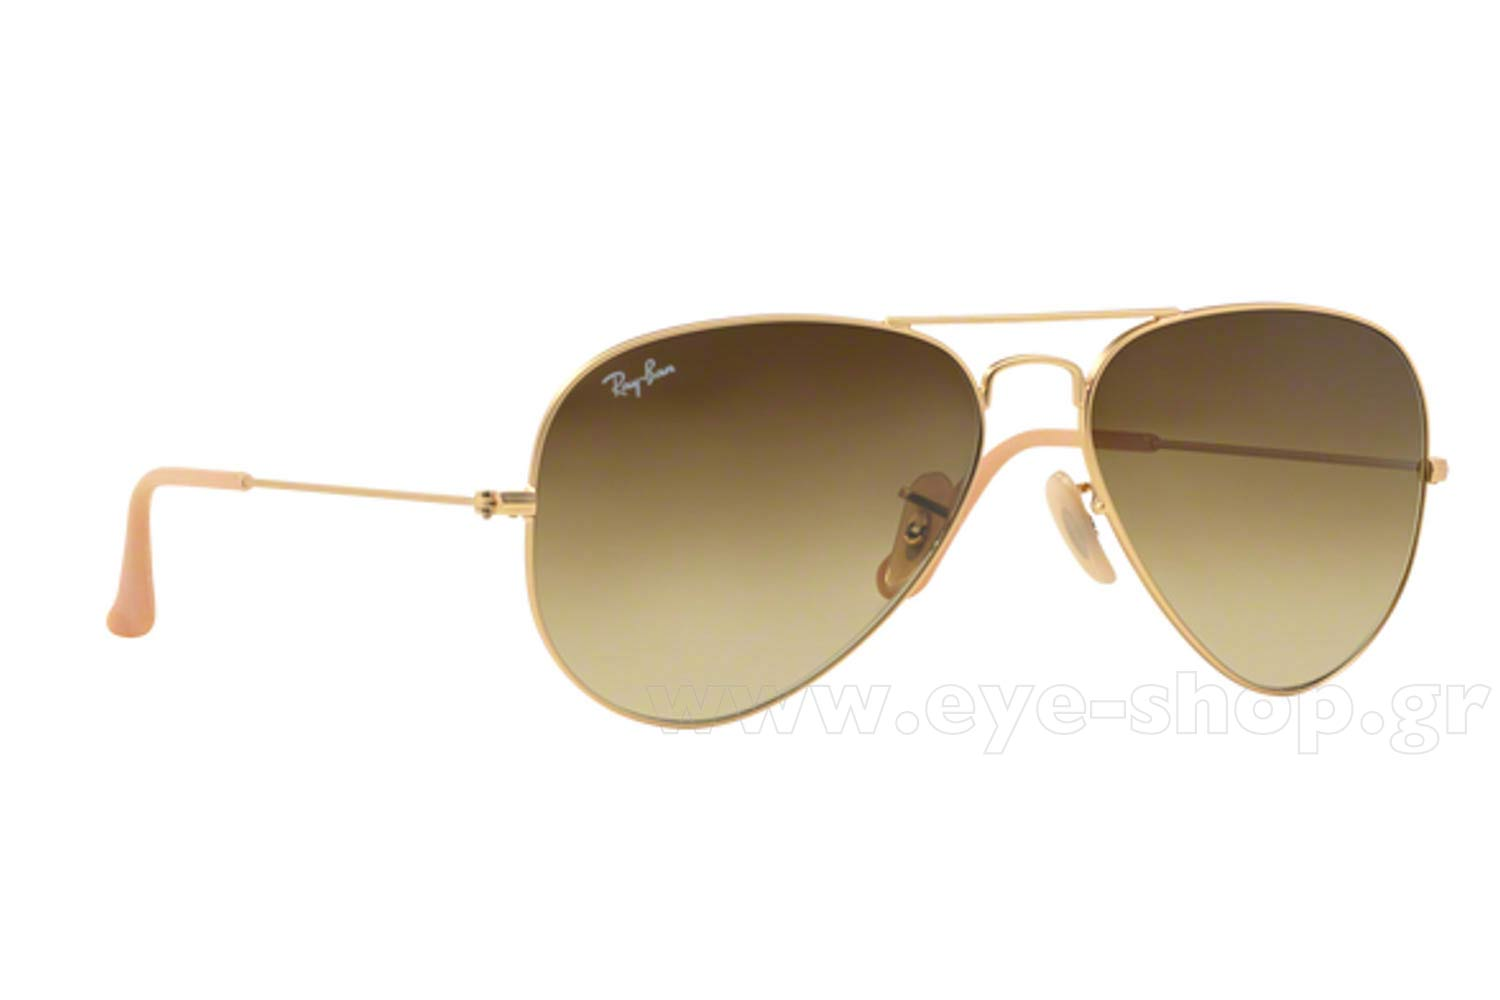 cdd30851953 All Models Of Ray Ban Sunglasses With Price « Heritage Malta